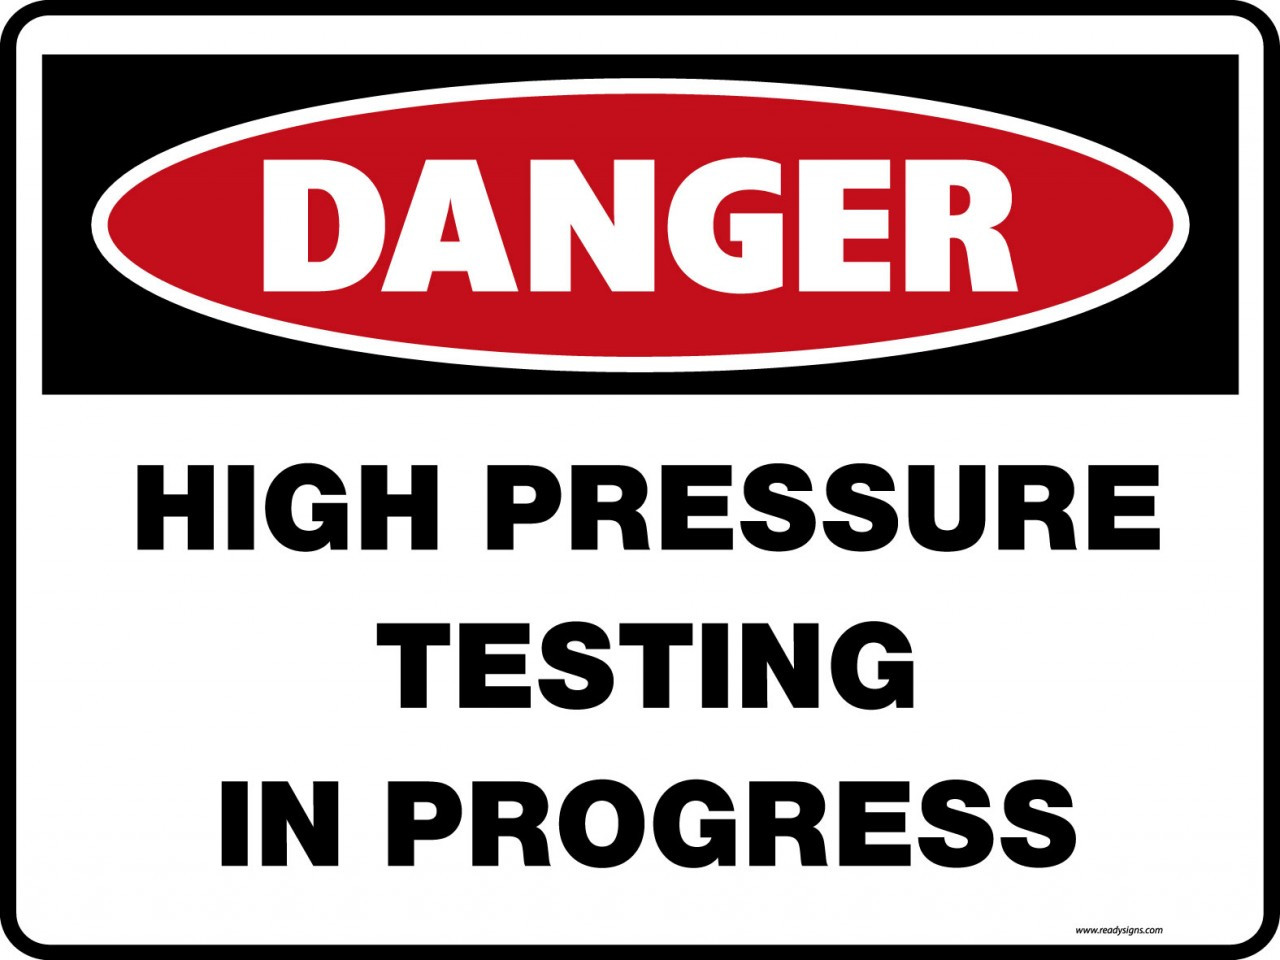 High Pressure Testing In Progress